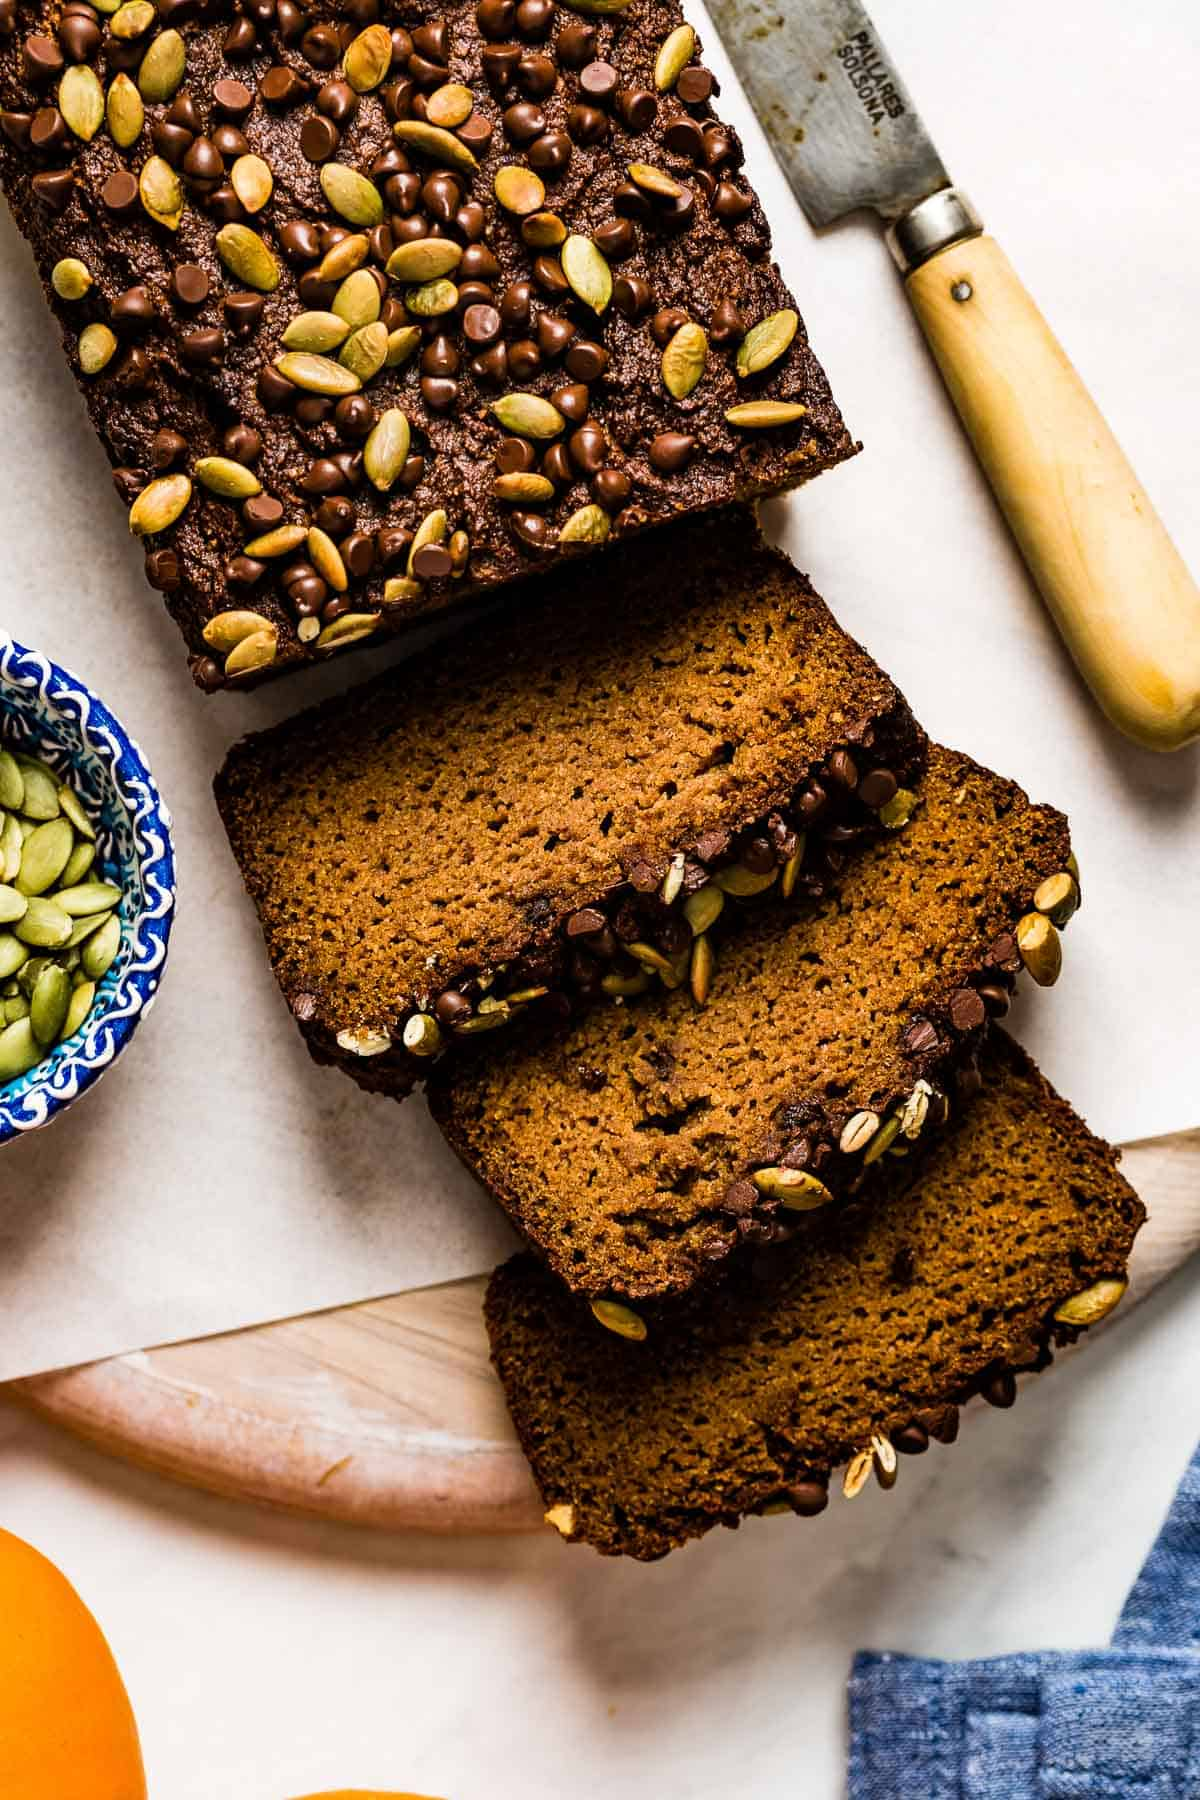 Gluten Free Pumpkin Bread with almond flour sliced from the top view